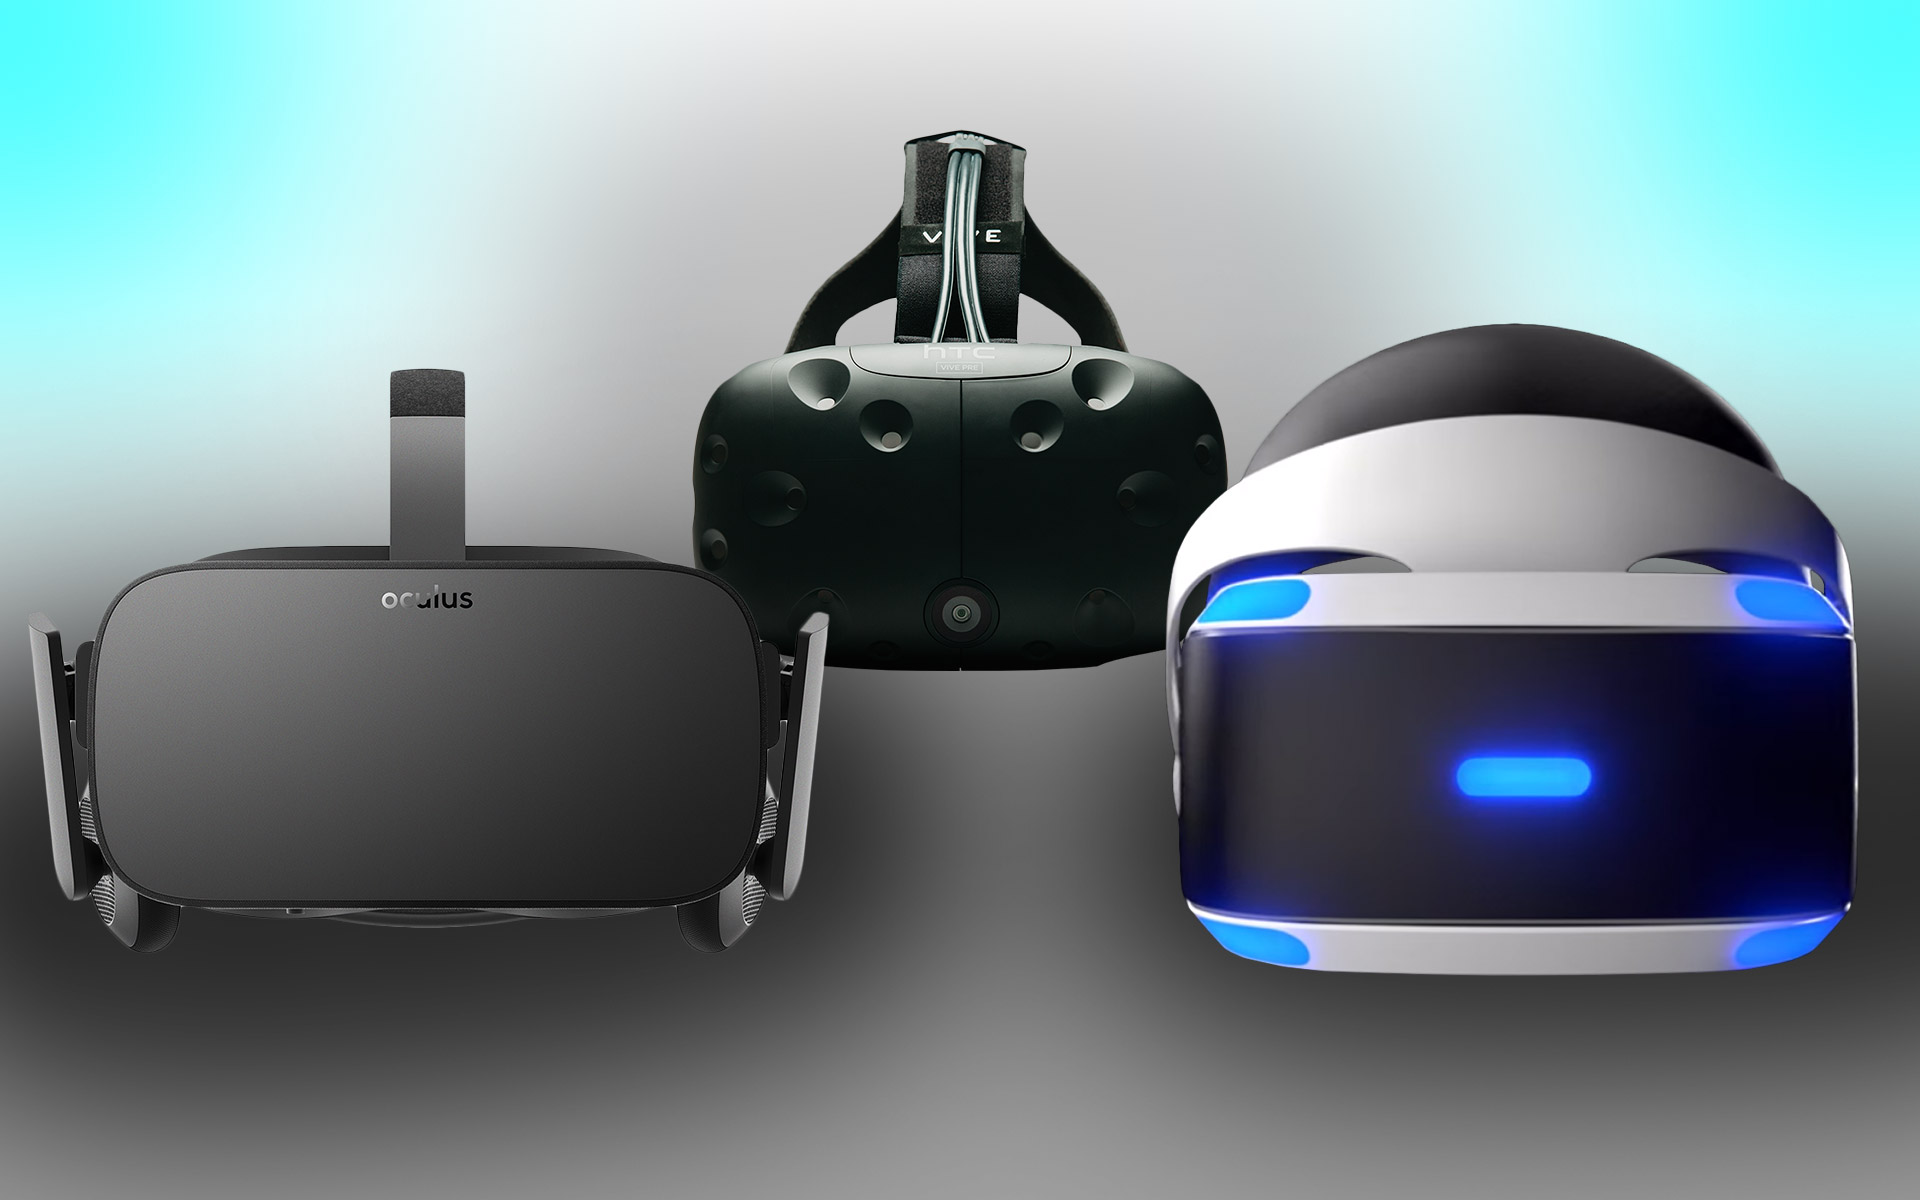 Best Vive Vr Games 2019 15 VR Games We Can't Wait to Play in 2019 – Road to VR